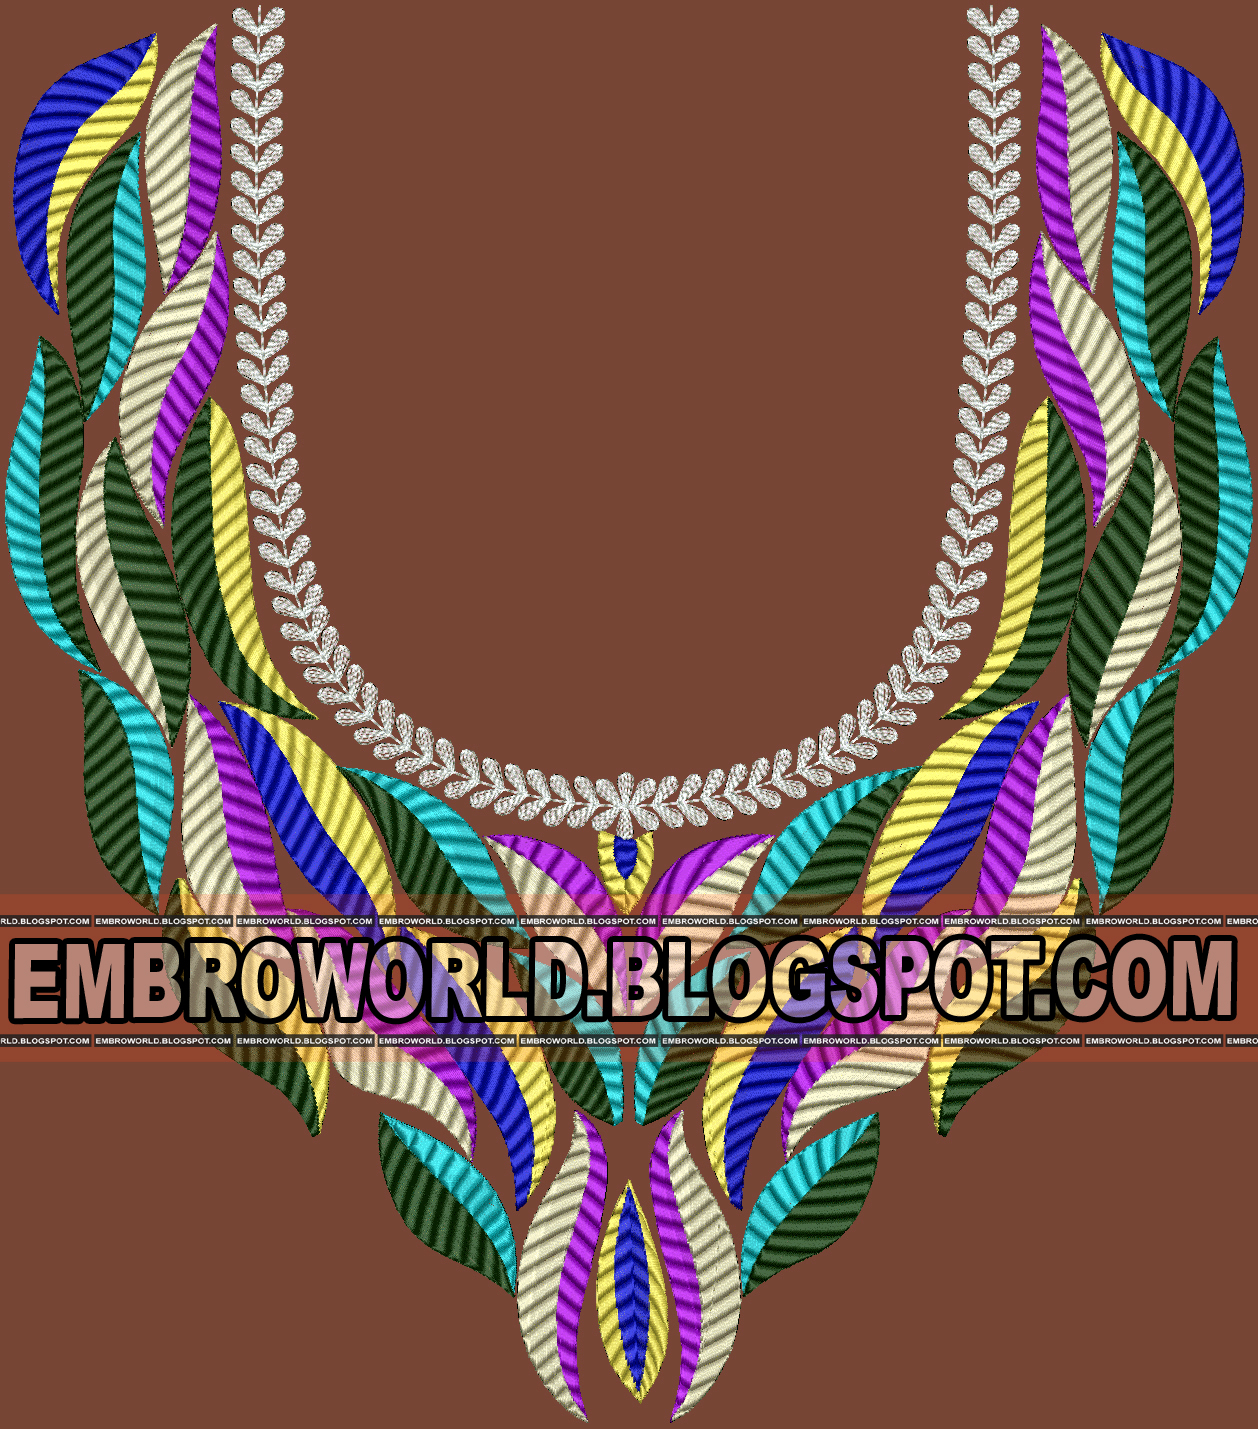 Premium Range Sizzling Embroidery Designs Latest Embroidery